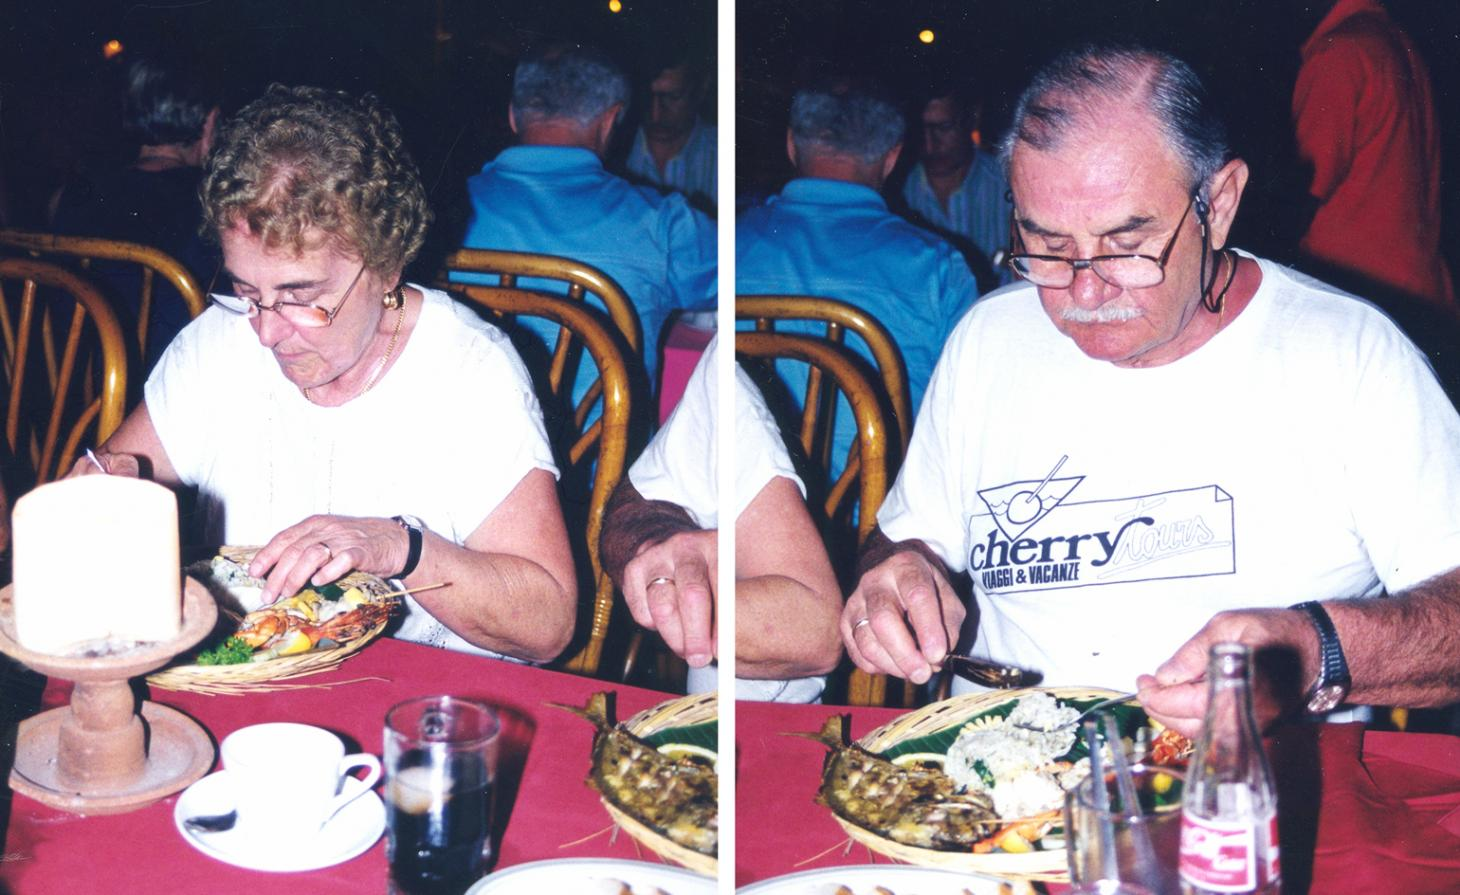 A man and woman pictured separately eating a plate of food in a book by Erik Kessels